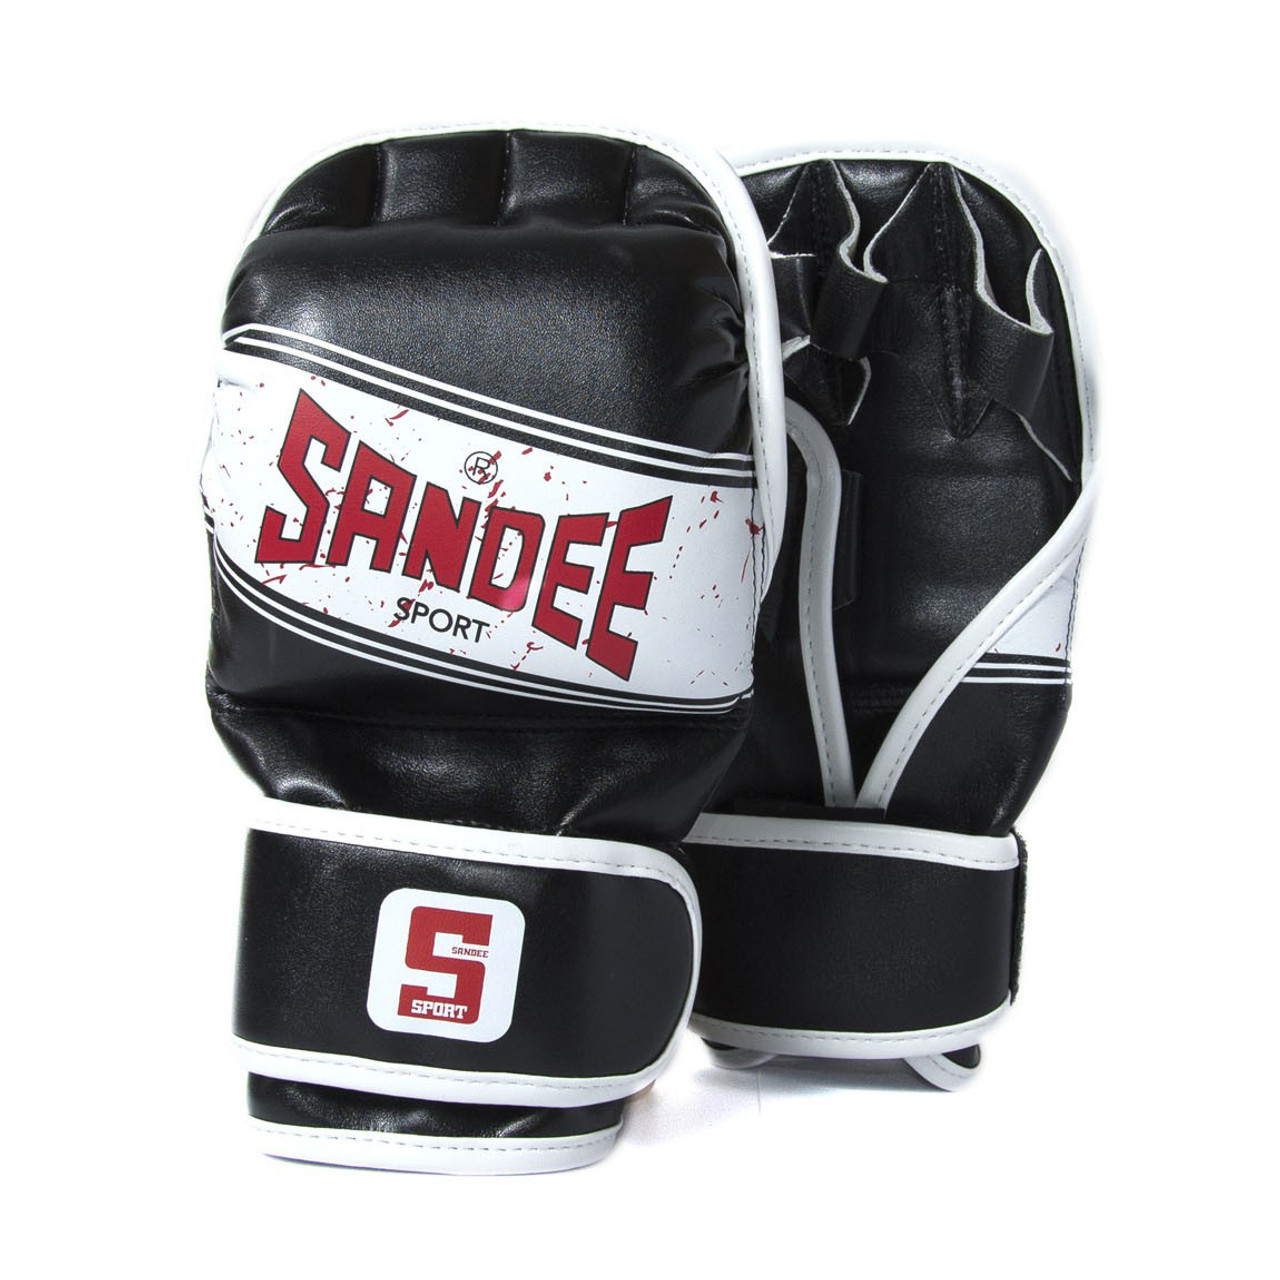 Sandee Black /& White Leather MMA Sparring Glove